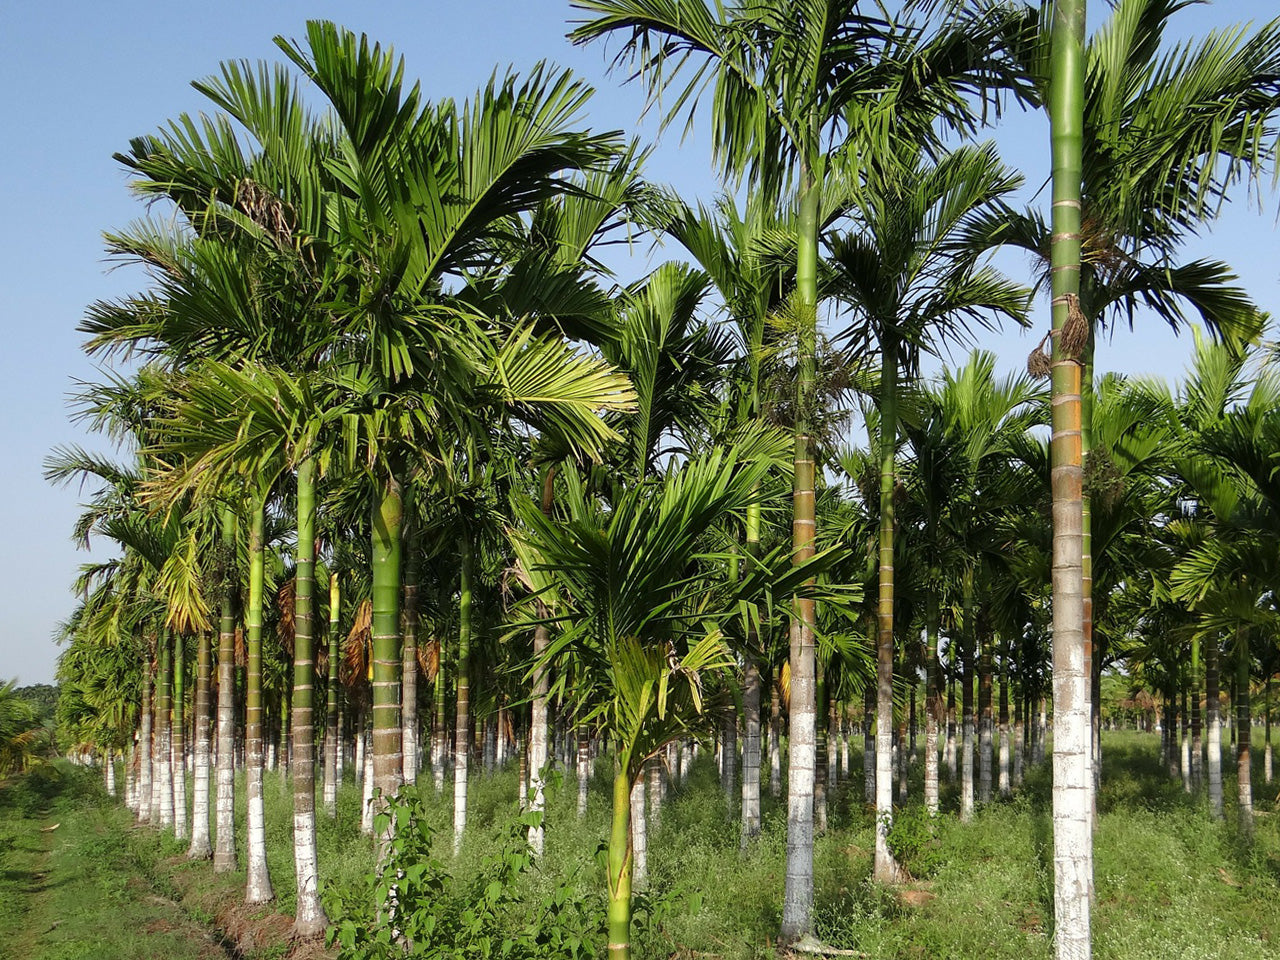 Grove of palm trees